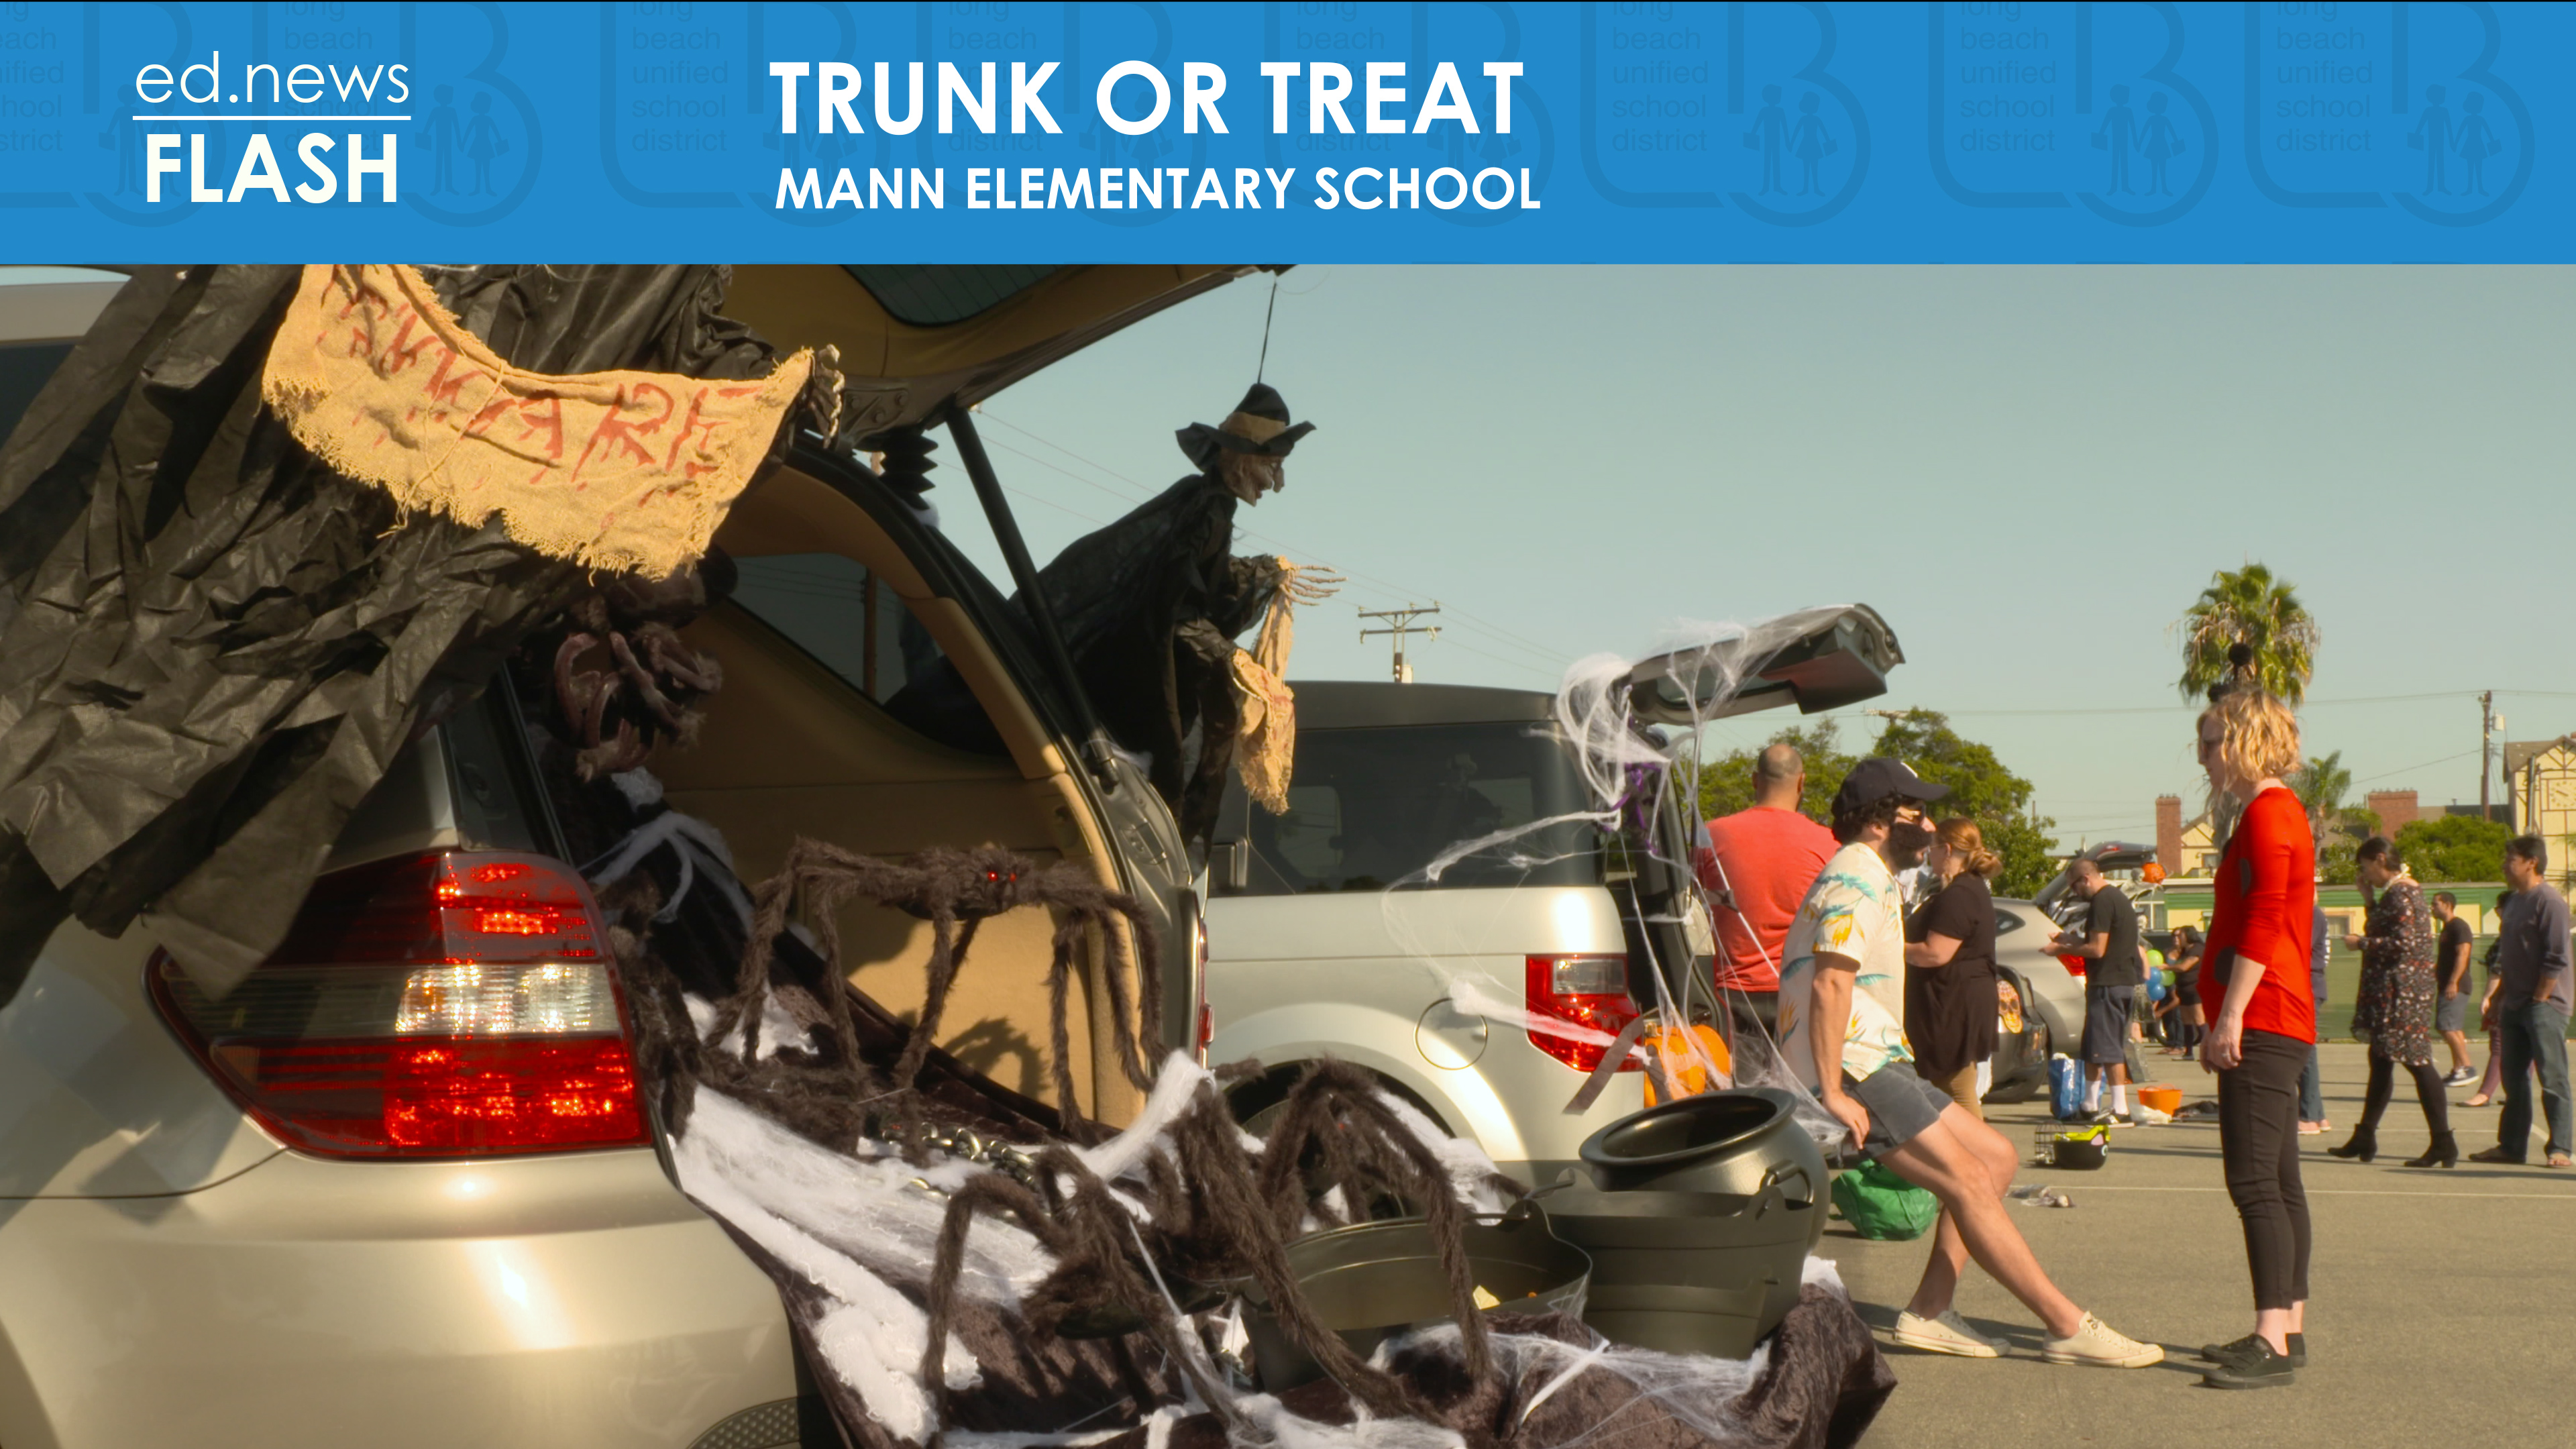 ed.news Flash - Trunk or Treat  - Video